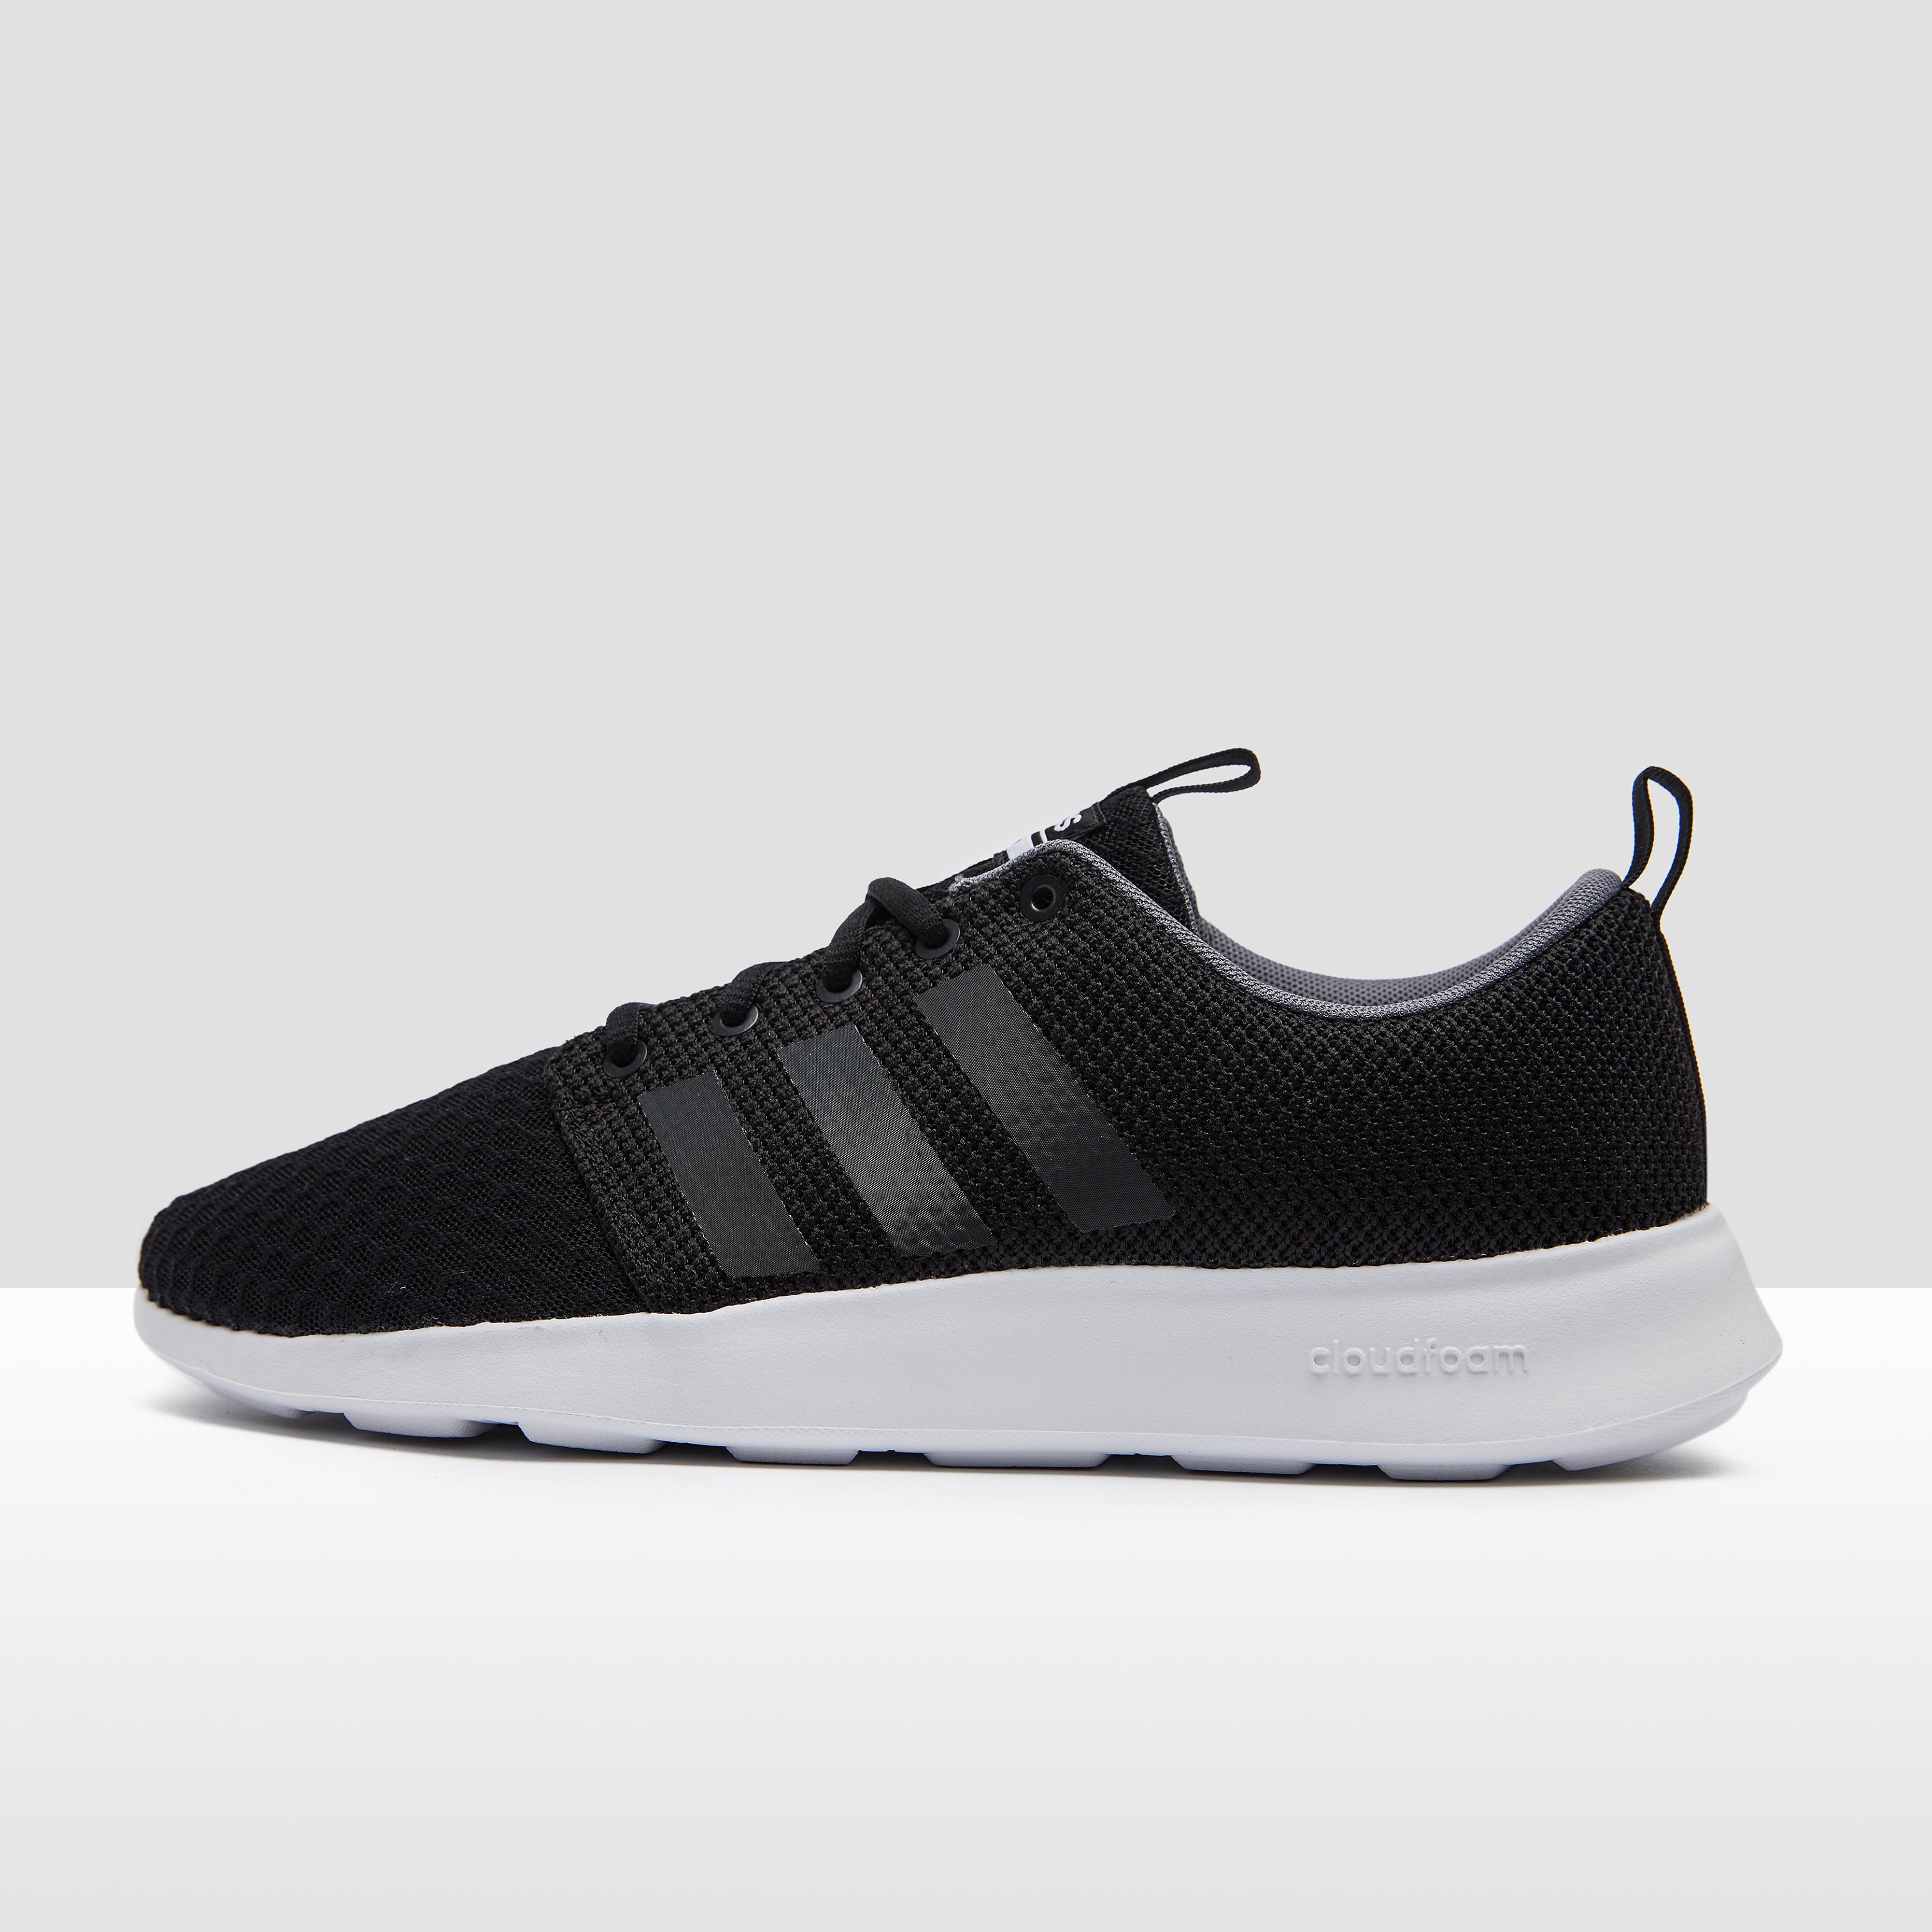 ADIDAS CLOUDFOAM SWIFT RACER SNEAKERS ZWART HEREN